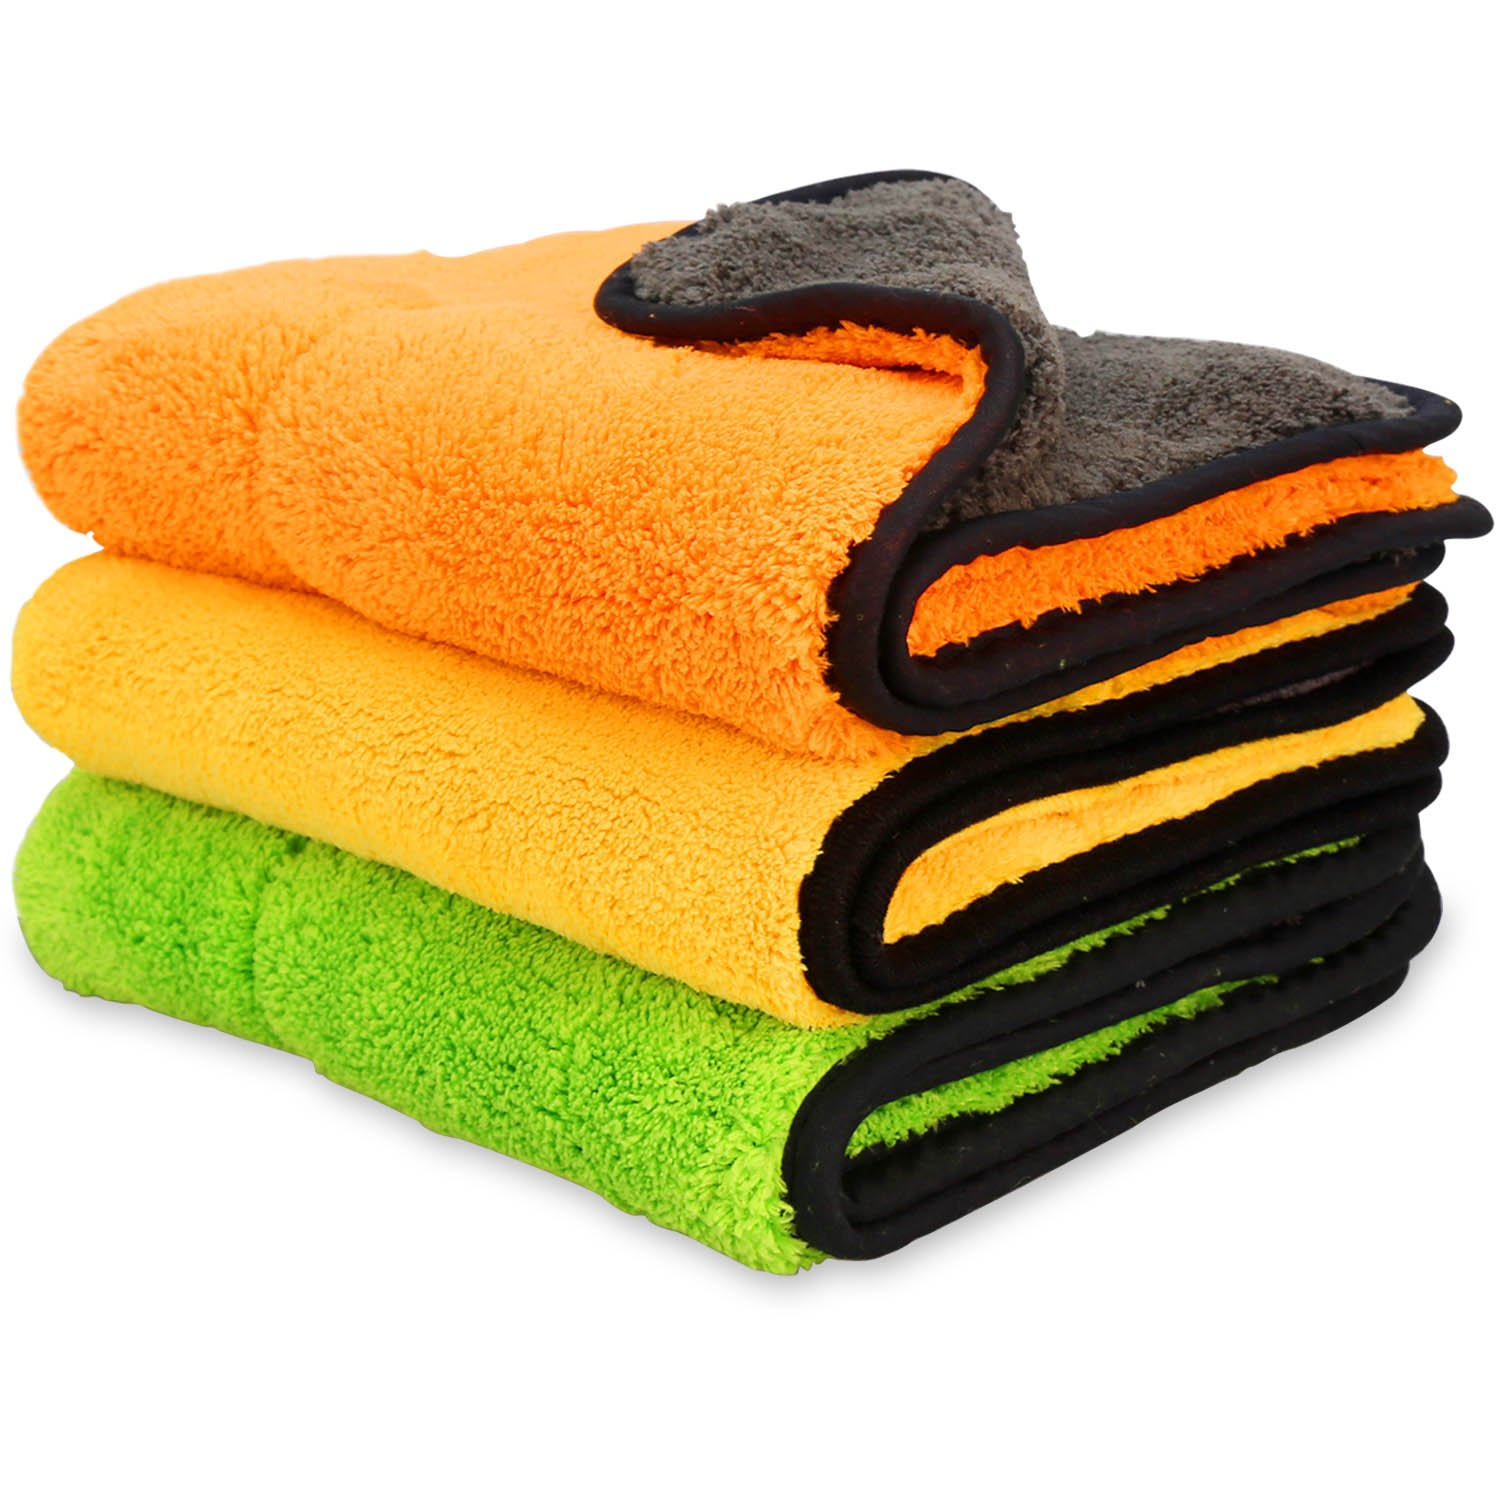 iTavah Microfiber Cleaning Cloth, Extra Thick Microfiber Towel Absorbent Dust Cloths Lint Free Cloth for Car Kitchen Window 3-Pieces